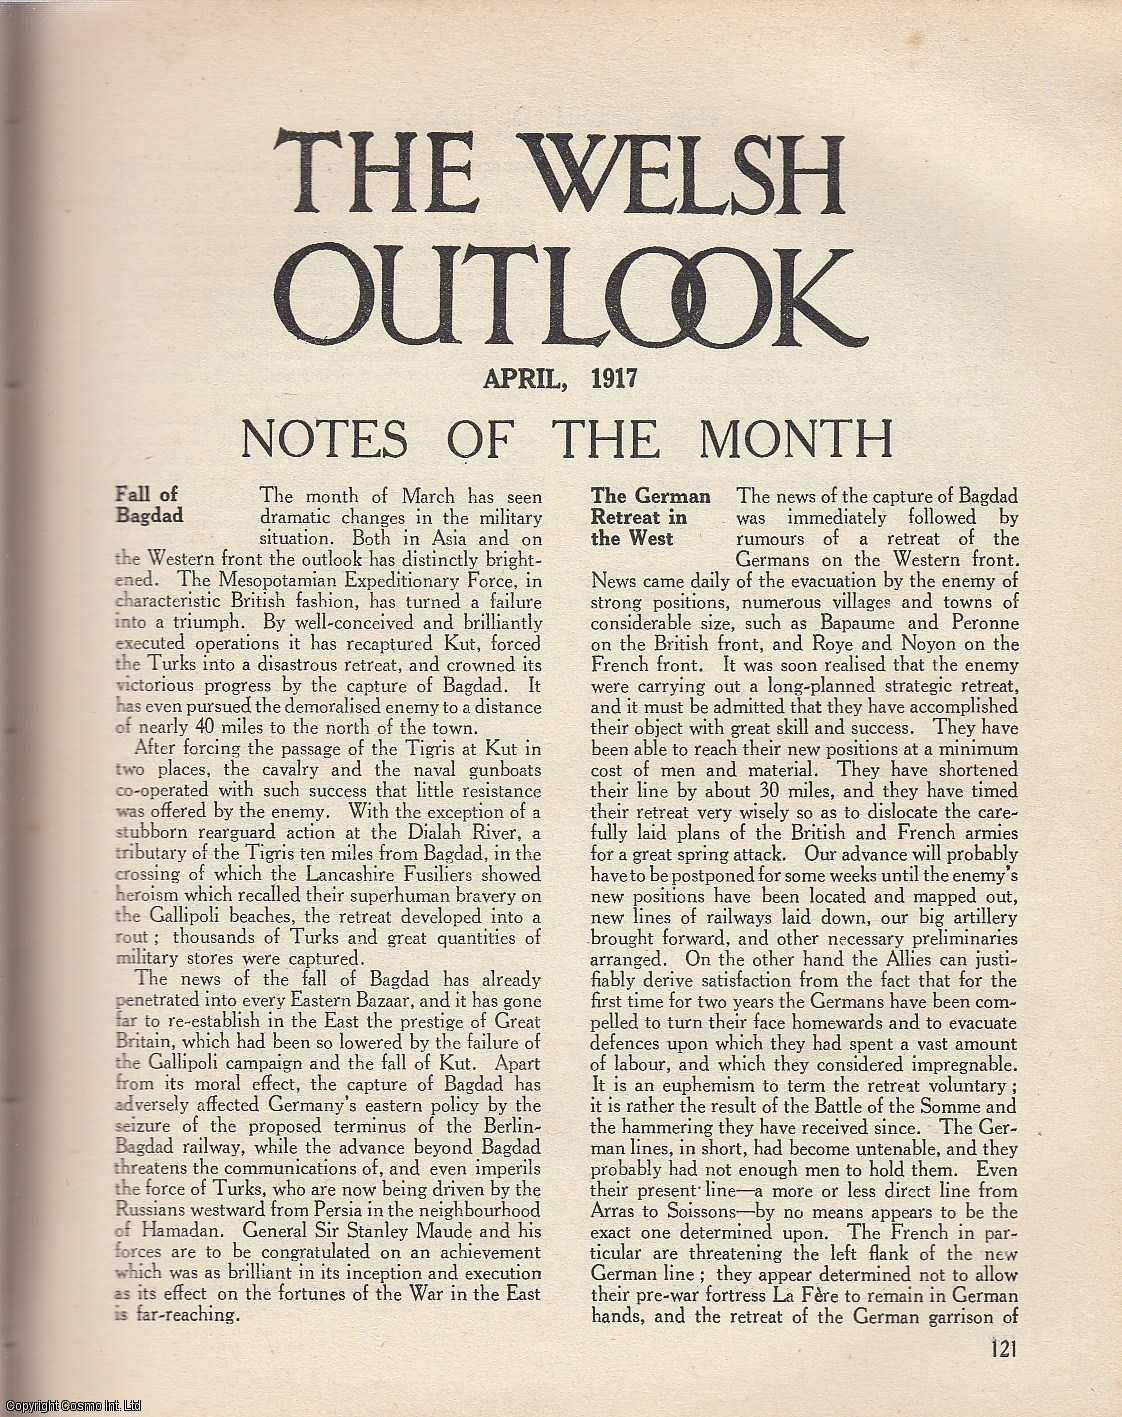 The Welsh Outlook. A Monthly Journal of National Social Progress. April, 1917. Contains; The Oldest British Colony by Mr. A.E. Zimmern; The Health of a Nation; Dafydd Ap Gwilym by T. Gwynn Jones; The Ballad of The Welsh Buccaneers by Alfred Perceval Graves; labour Problems: Guild Socialism; The Spectators Advertisement Section by W. Dyfed Parry; Y Fendith by W.J. Gruffydd; The Germanic Obsession by Miss L. Winstanley; Wales and The Study of Church History by R.T. Jenkins; Classics and The British Citizen by Professor Gilbert Norwood; Industry and Education by Geraldine E. Hodgson., Thomas Jones (Editor)